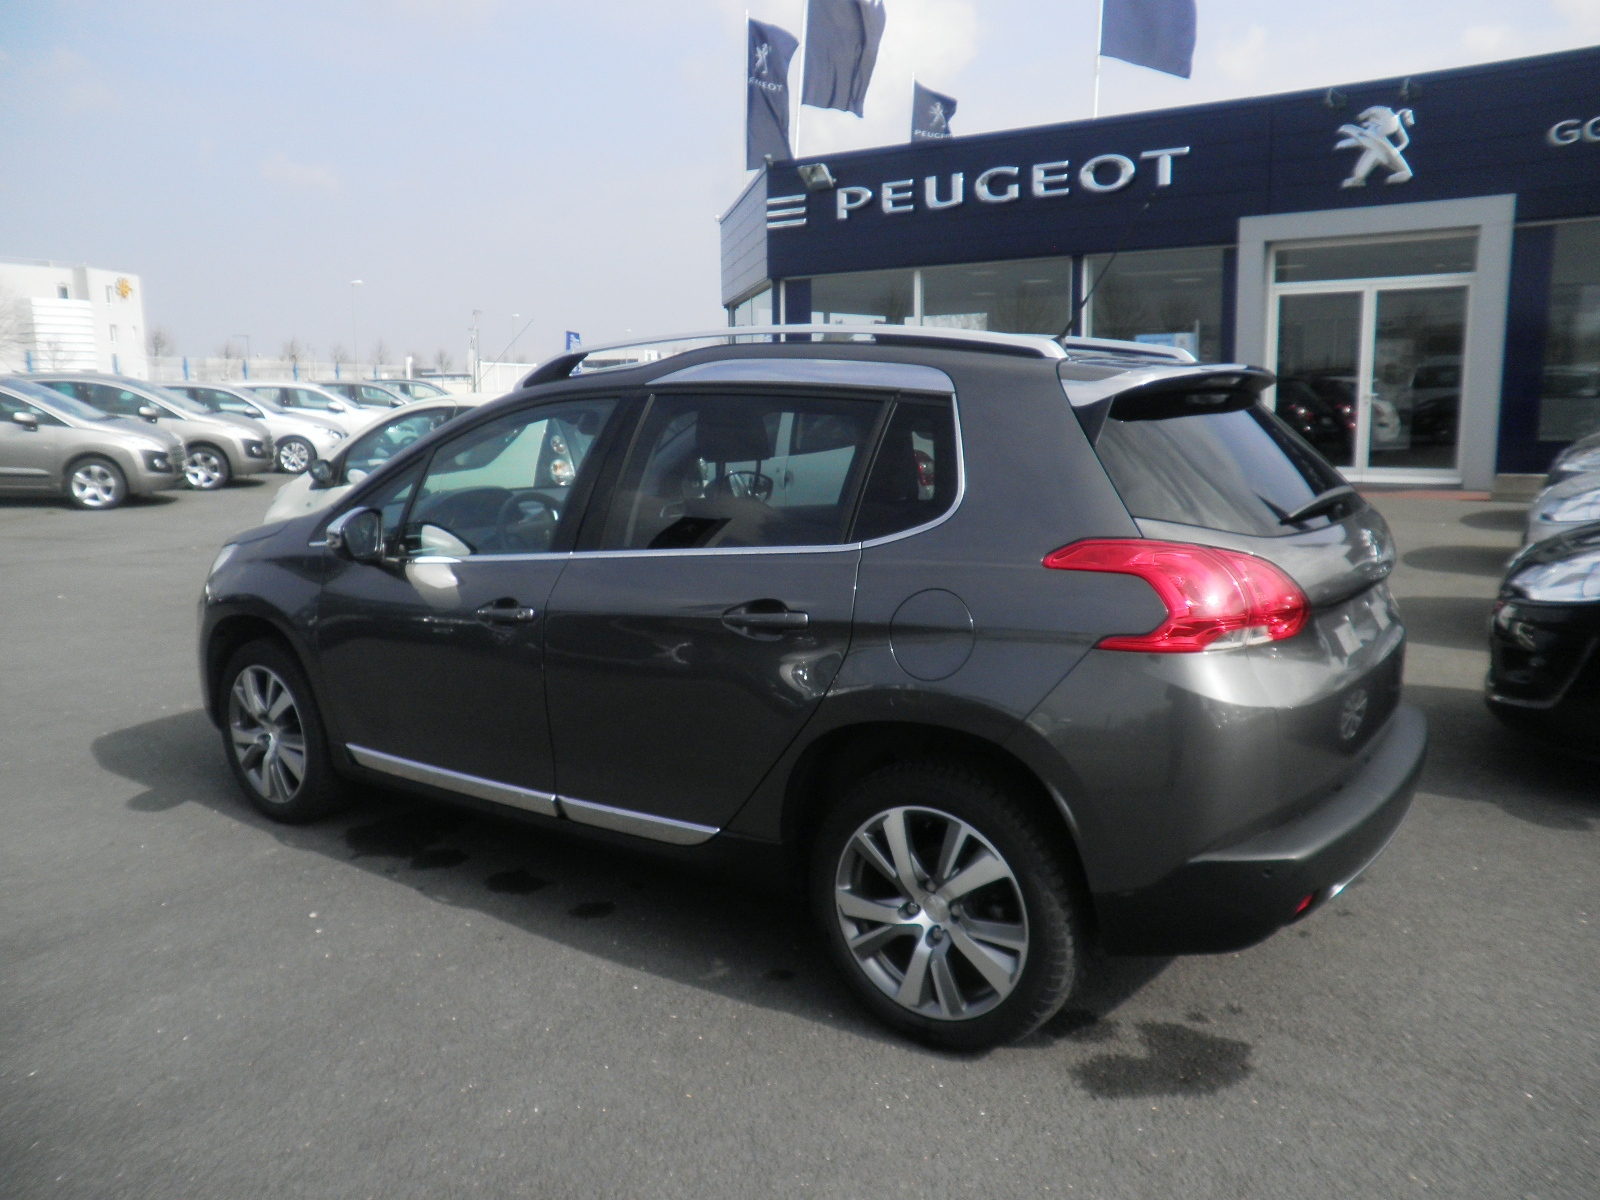 annonce peugeot 2008 allure gps 1 2l pure tech 110cv bvm5 22796 km garage des peupliers saint. Black Bedroom Furniture Sets. Home Design Ideas